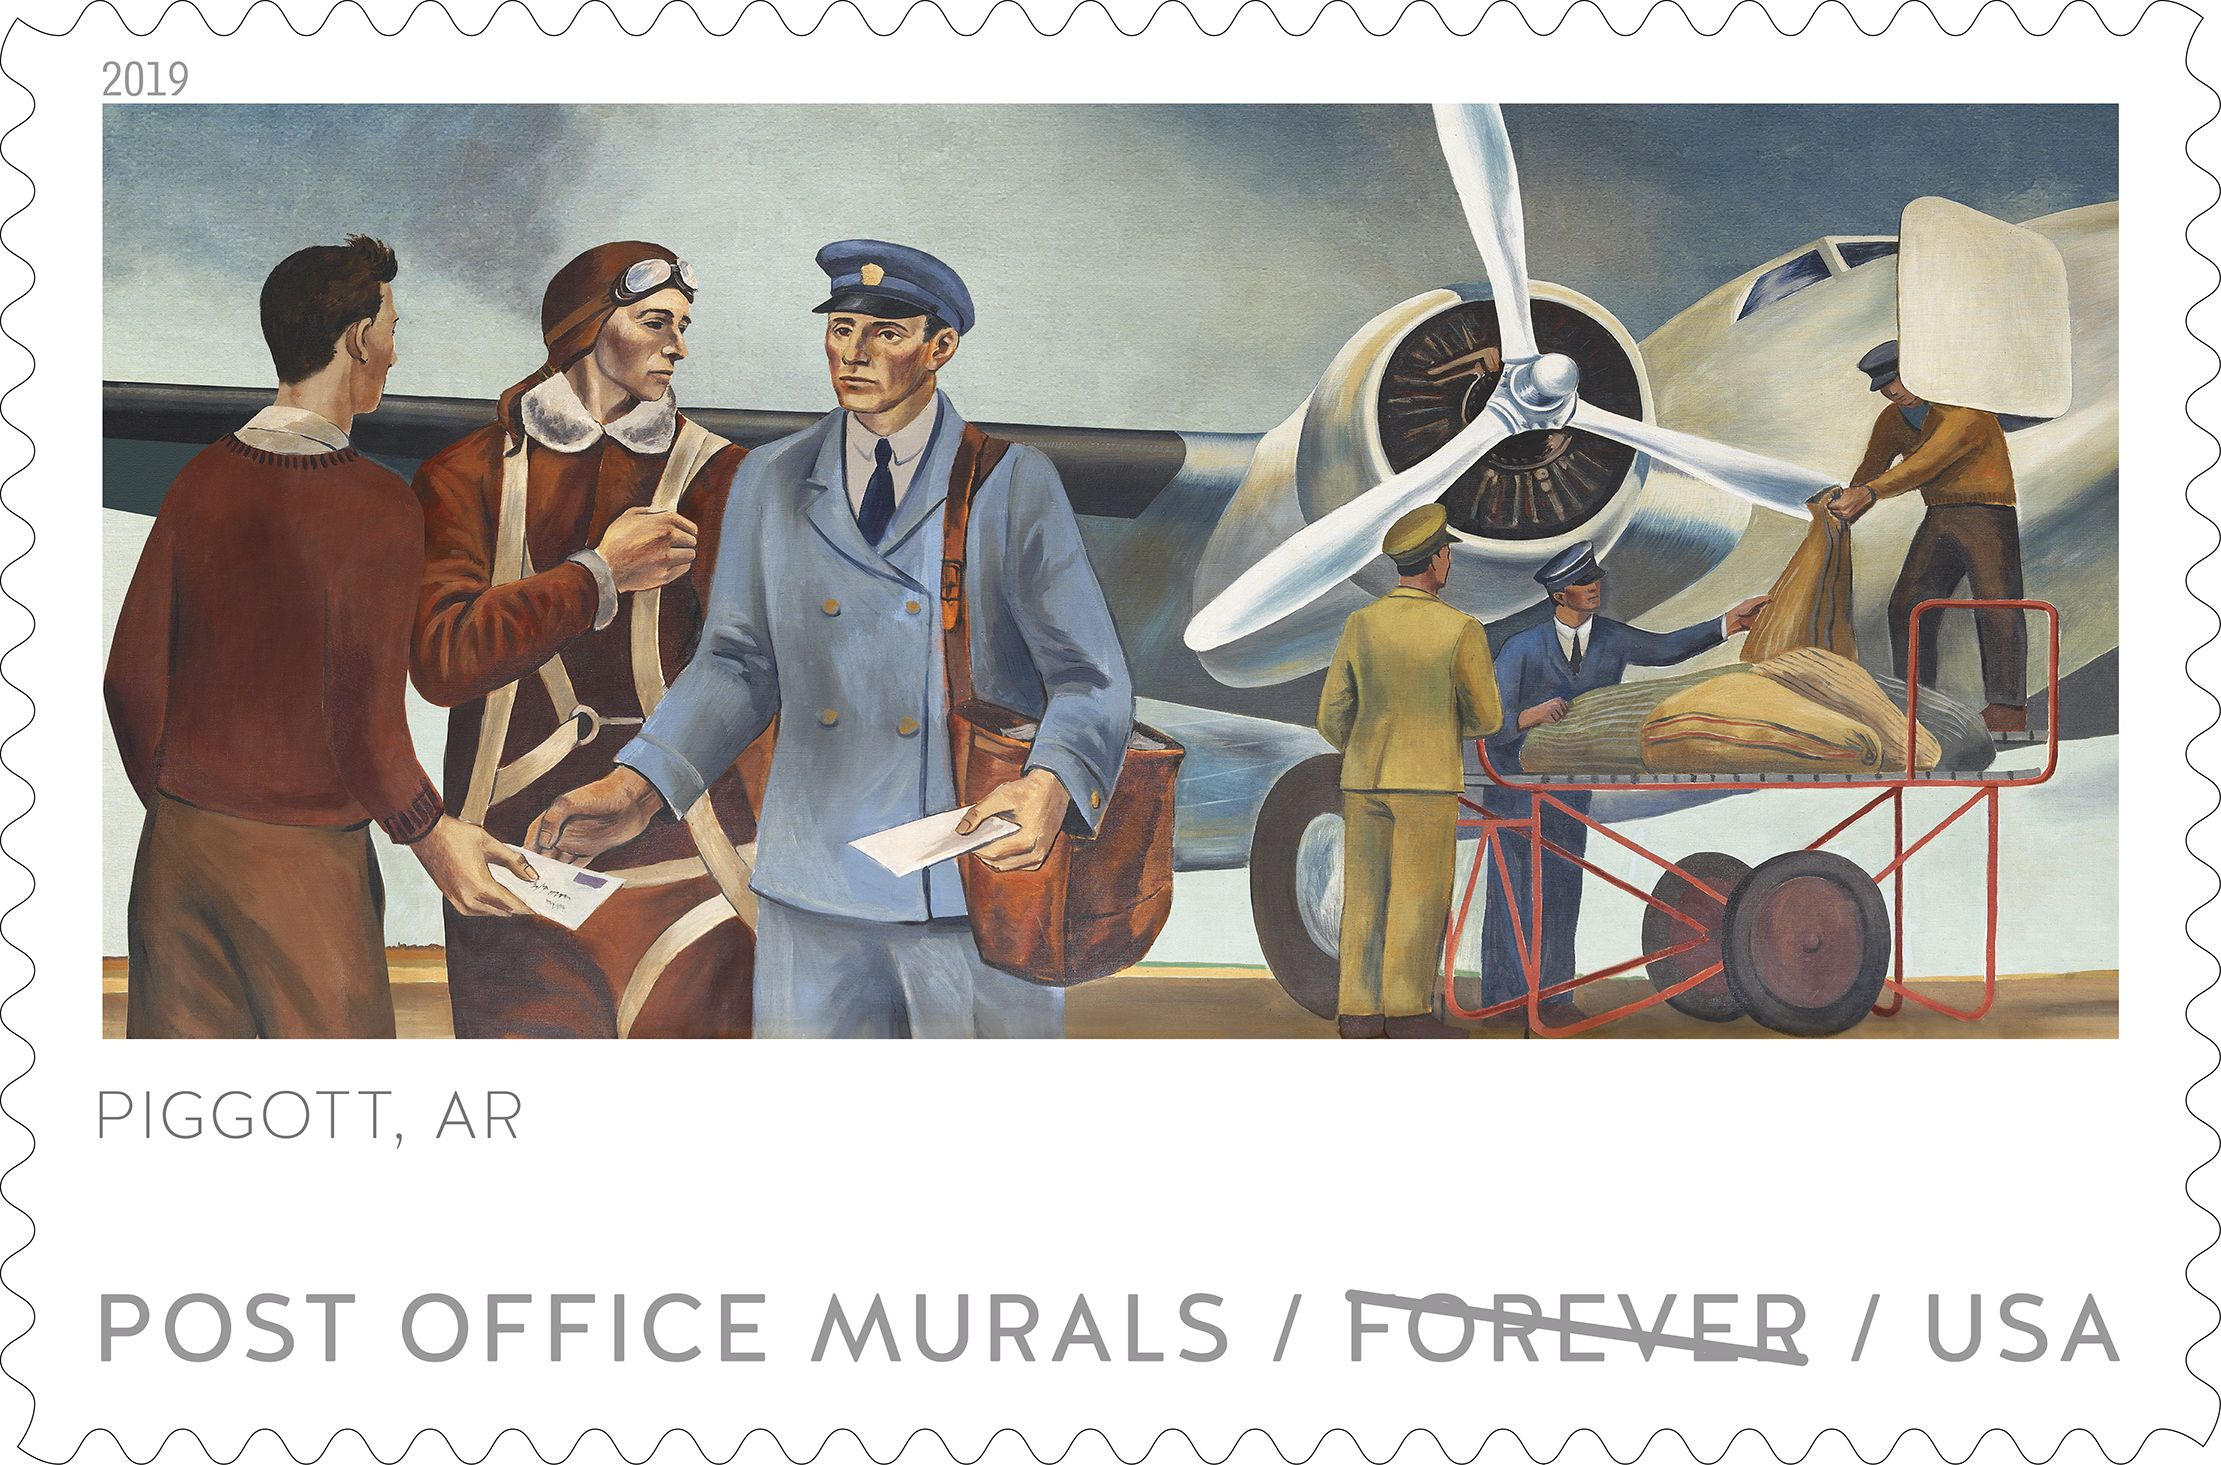 A new set of five stamps depicting Post Office murals will feature one from Piggott, Arkansas. The stamps will be unveiled officially on Wednesday, April 10, 2019.  (Courtesy of the USPS.)